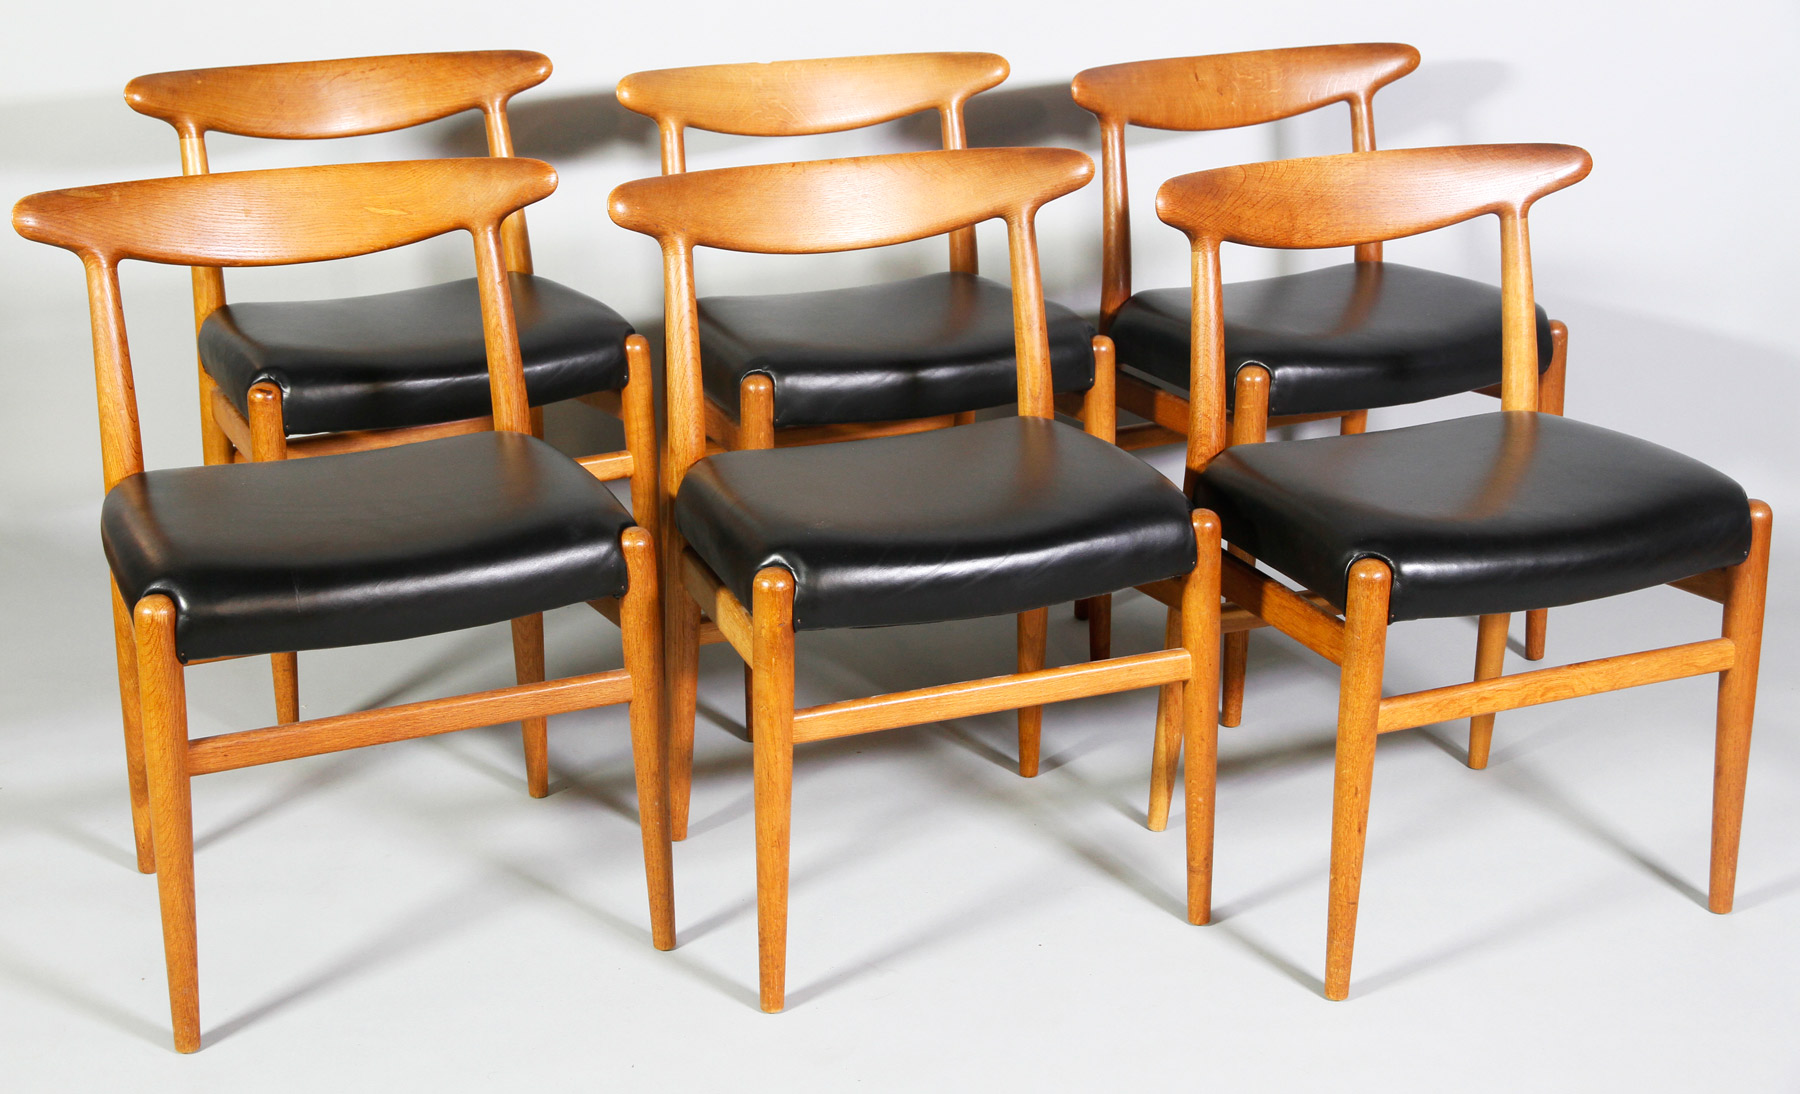 hans wegner chairs design within reach z line executive chair furniture to appear in upcoming 20th century